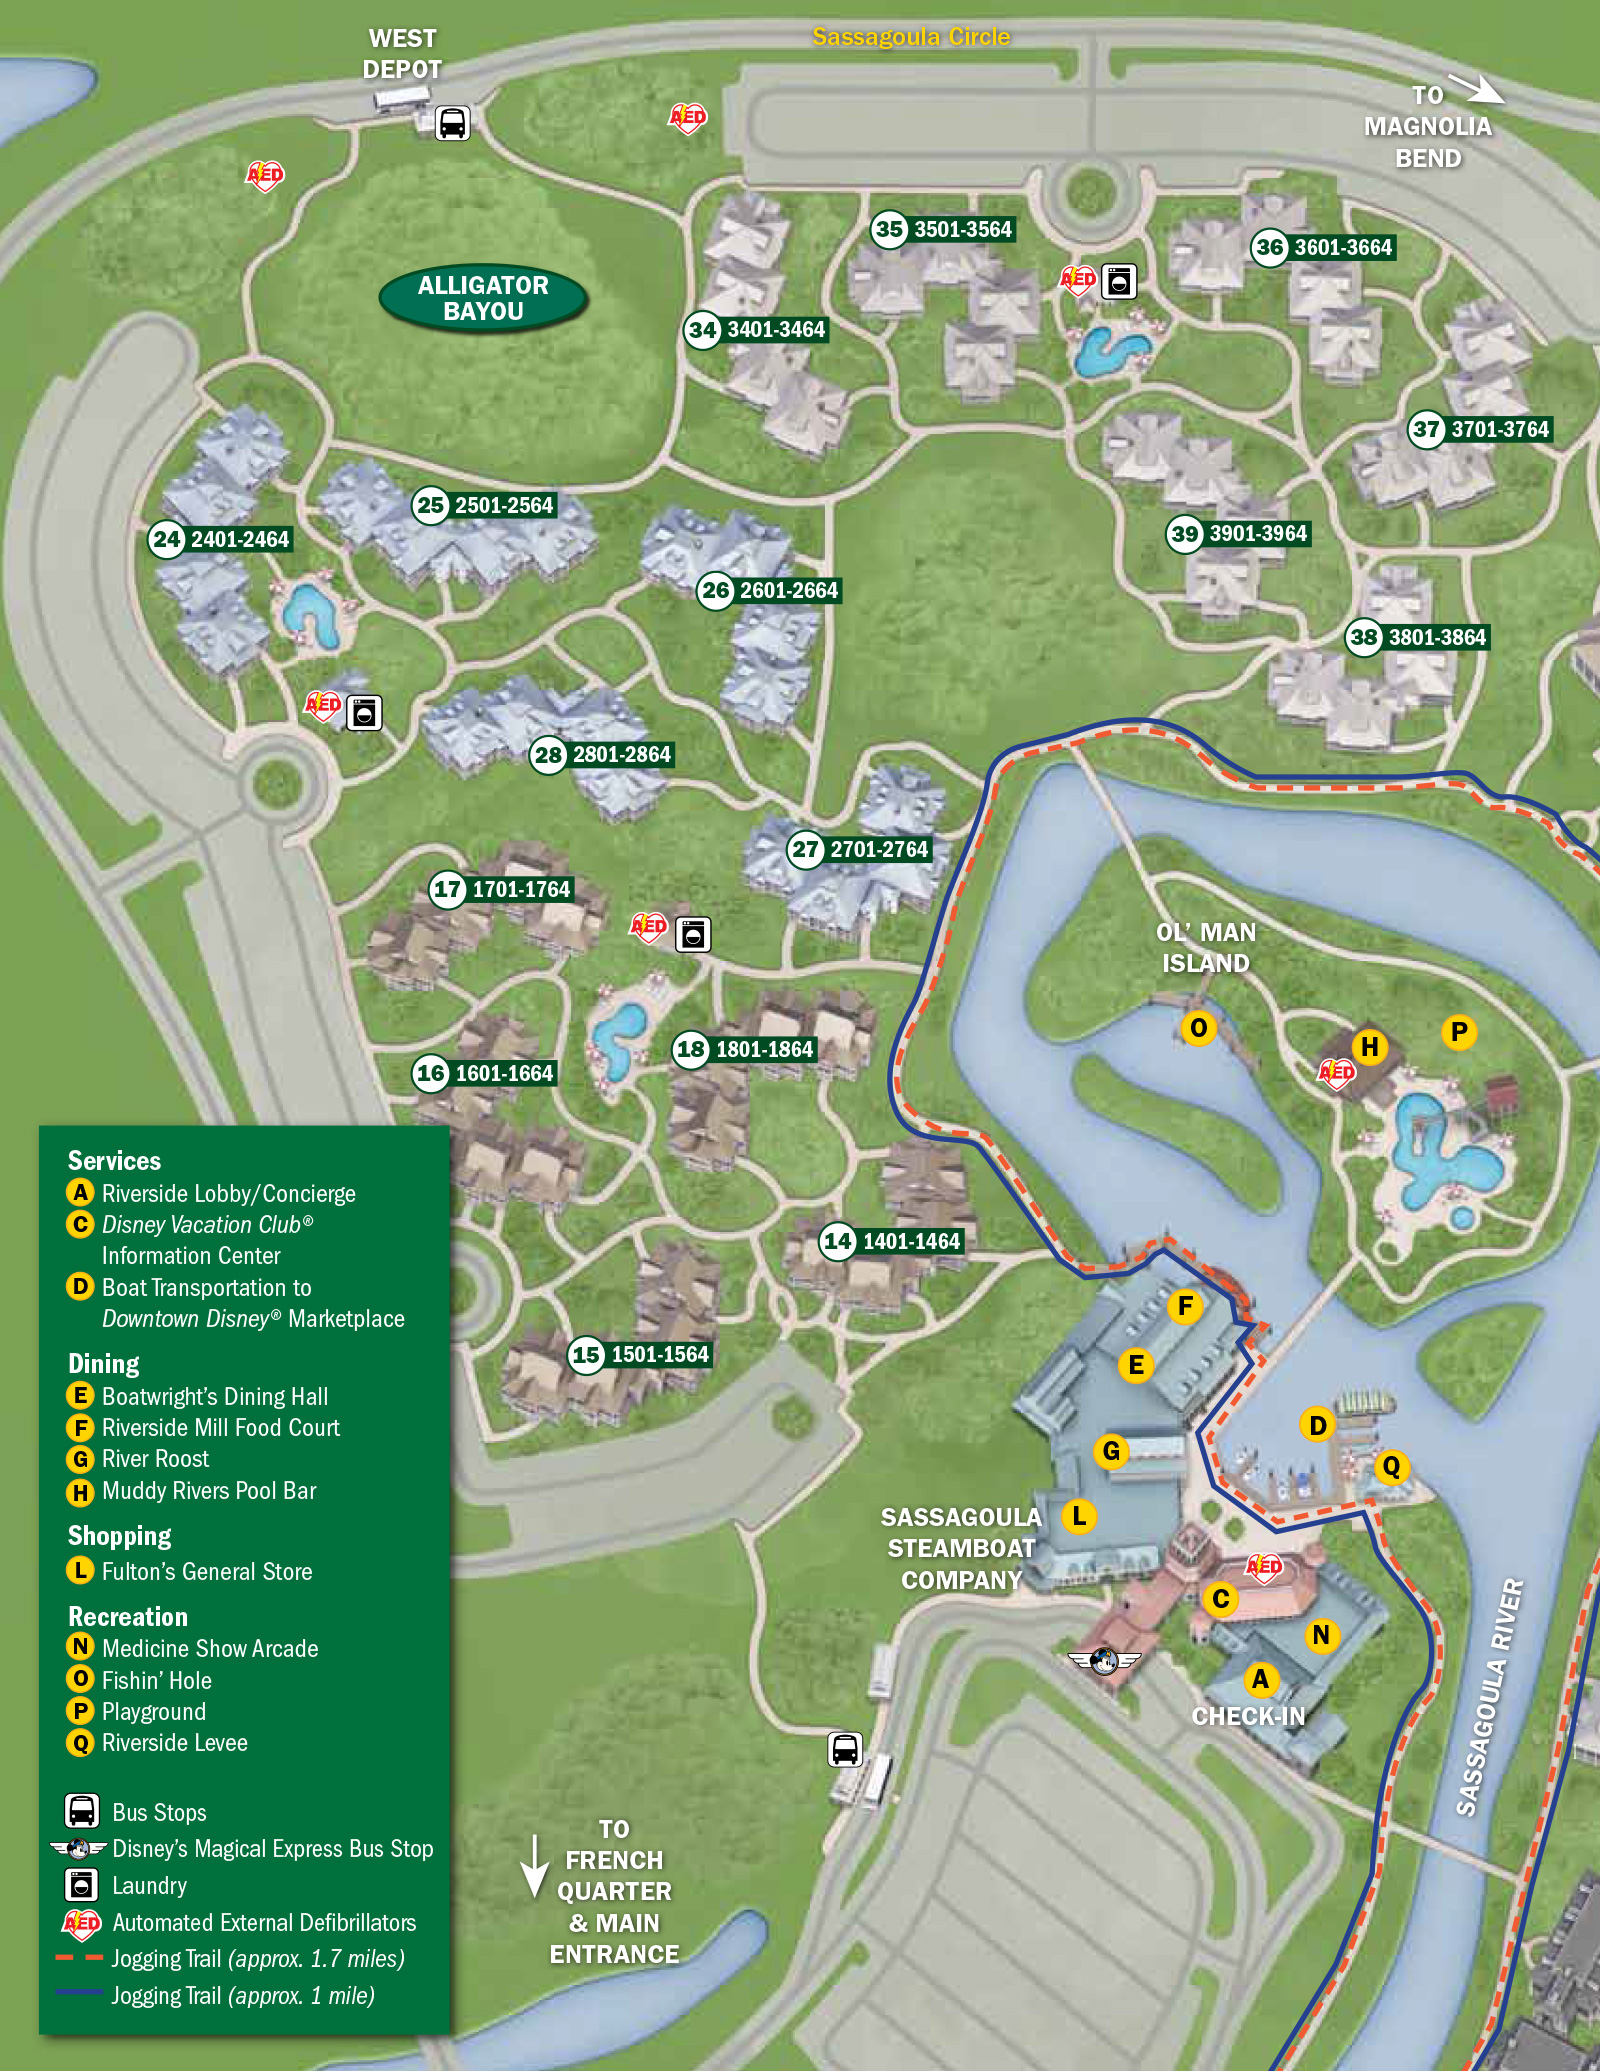 2013 Port Orleans Riverside Guide Map Photo 2 Of 4